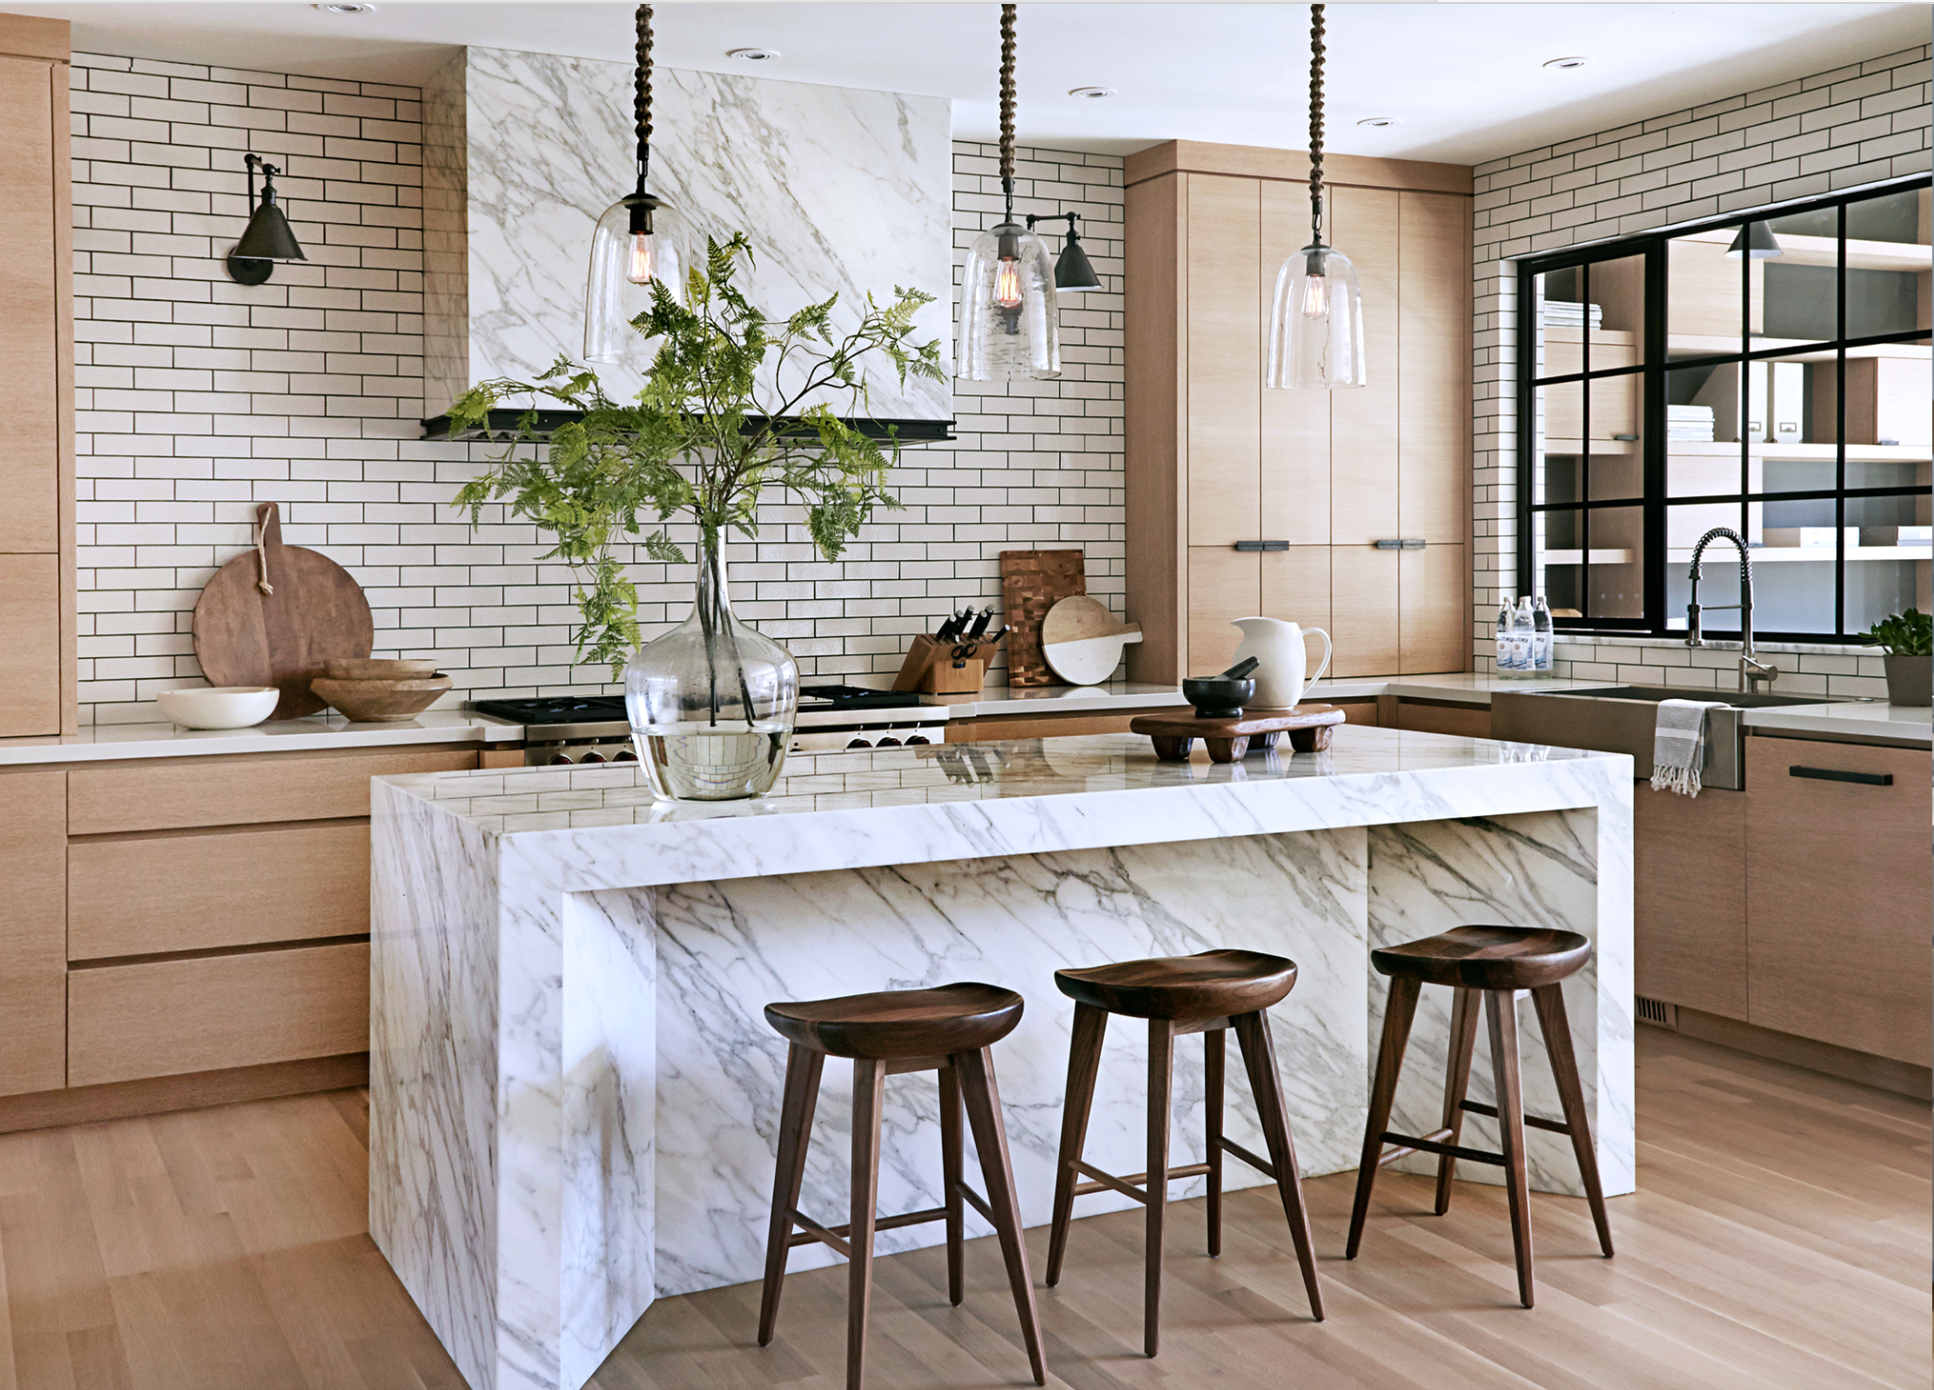 Designing A Small Caterer Kitchen